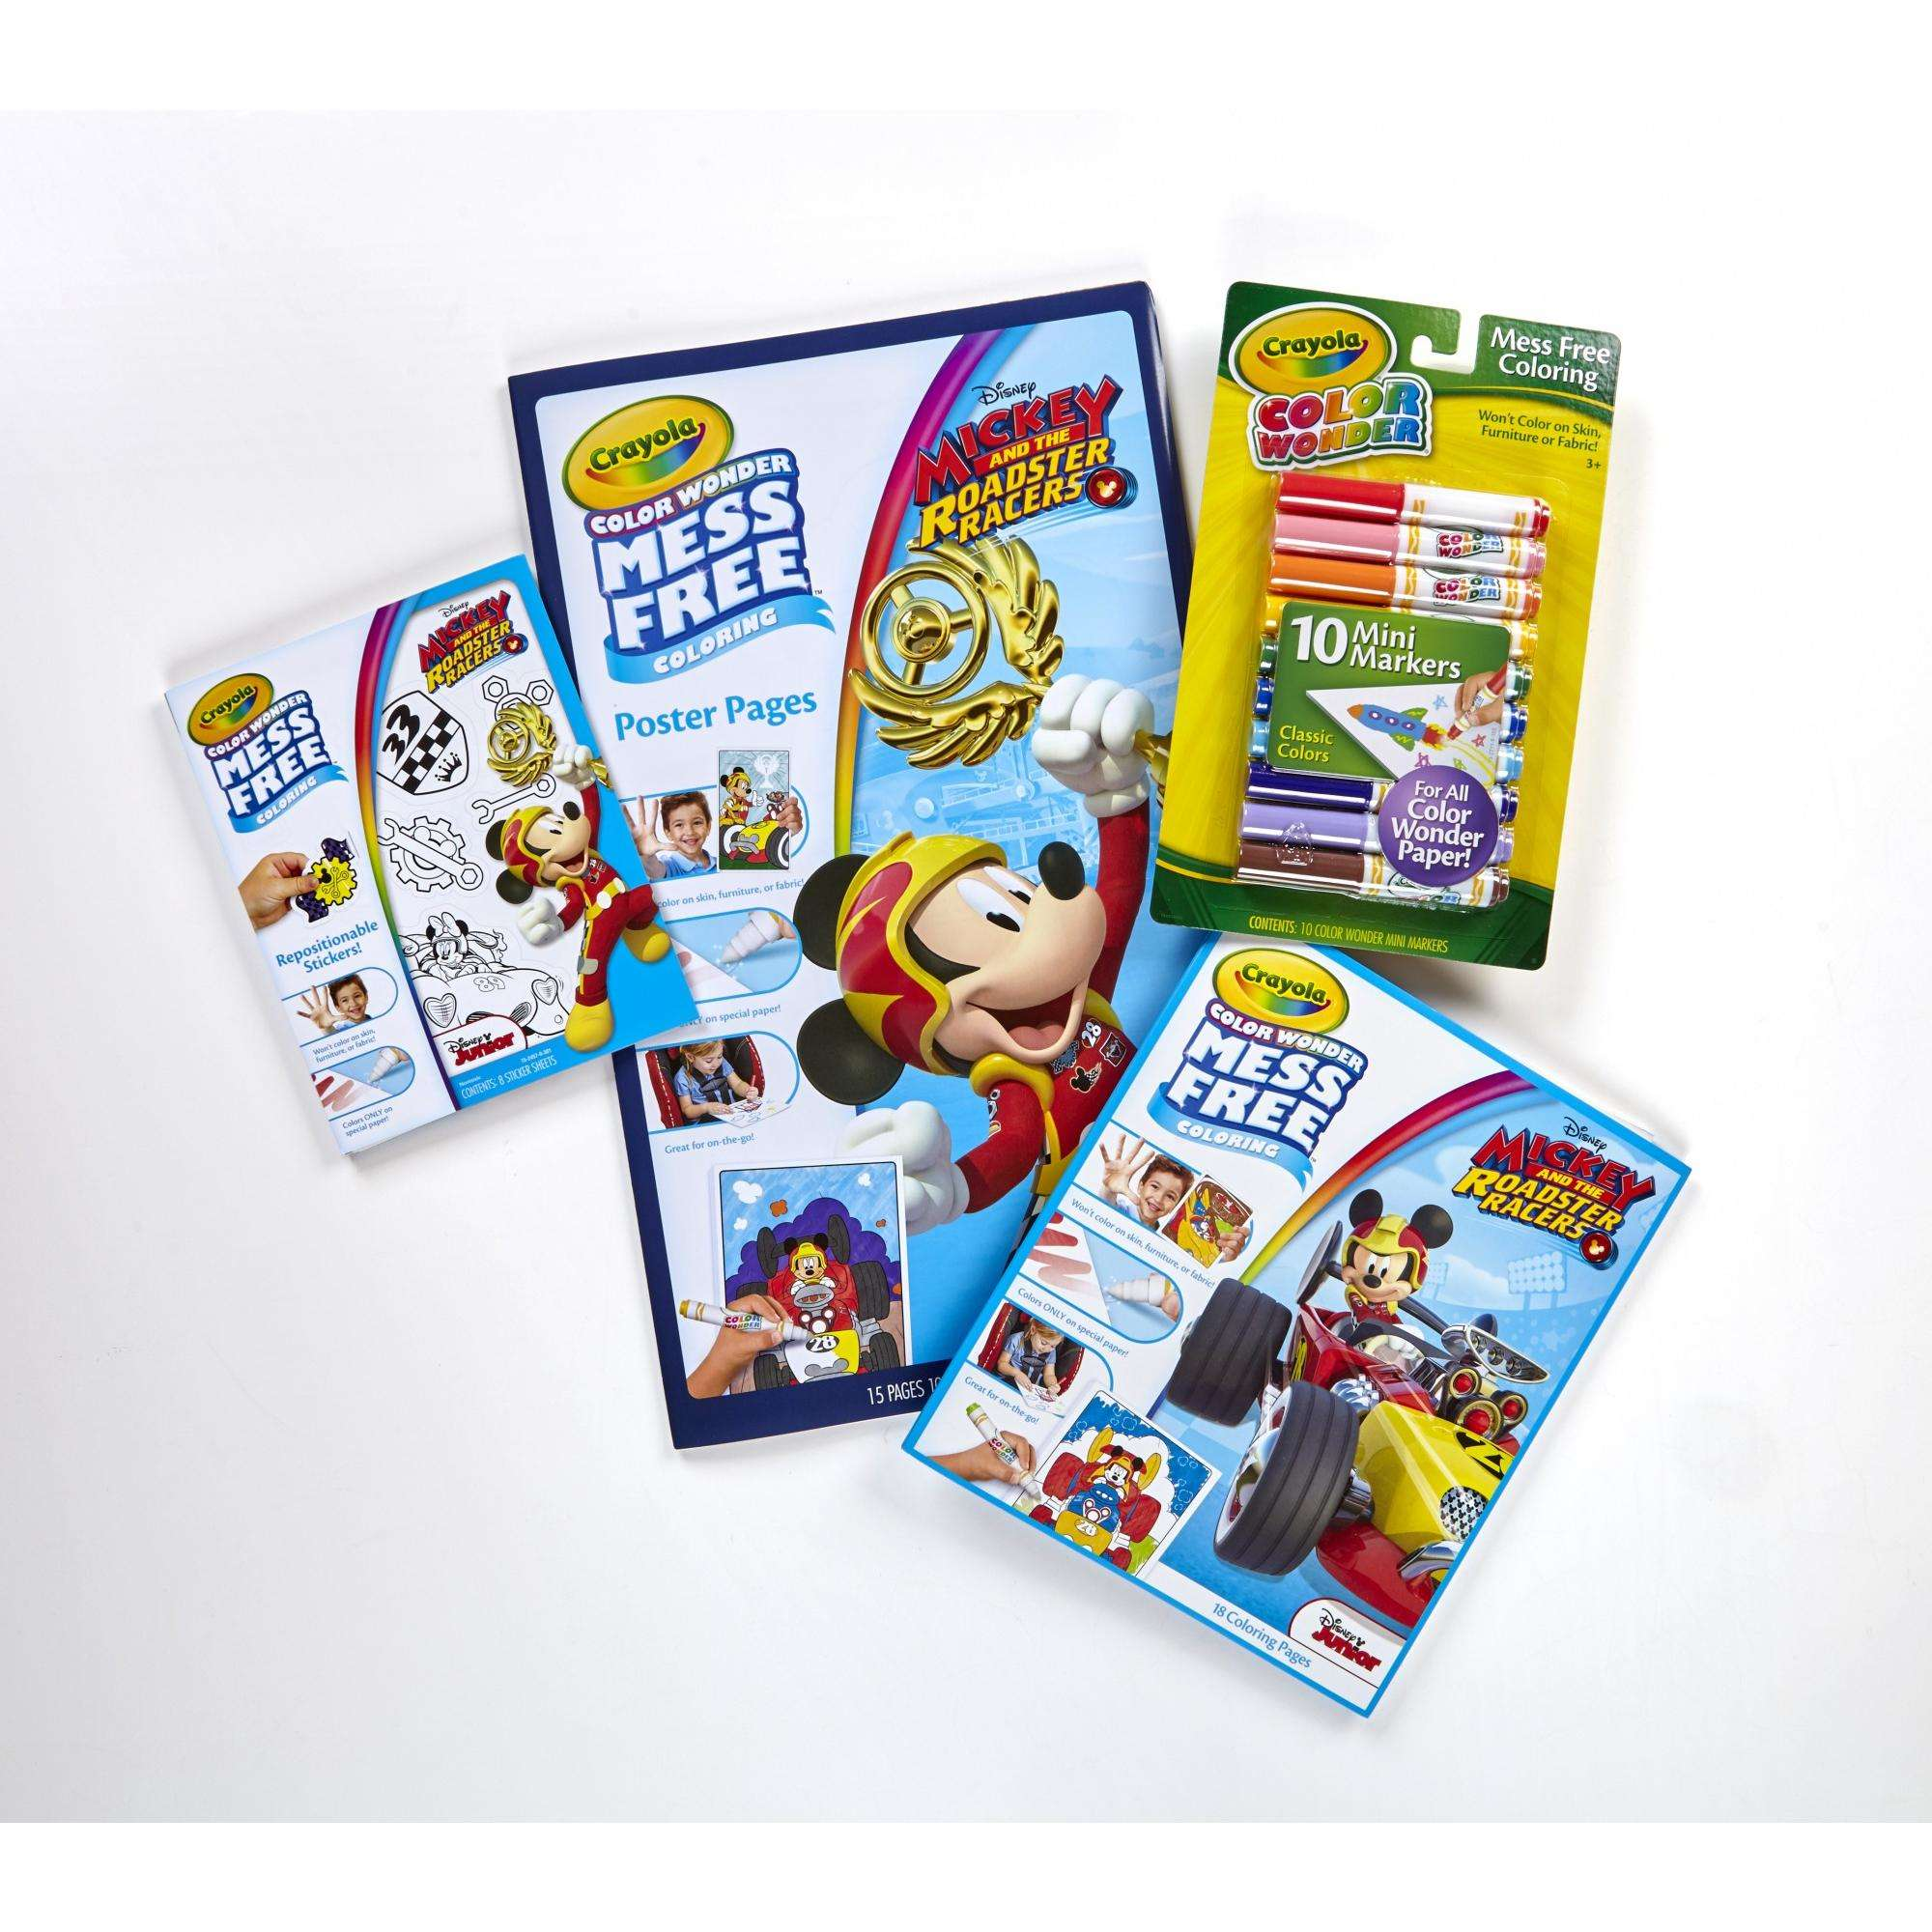 Crayola Color Wonder Mickey and Roadster Racers Variety Pack